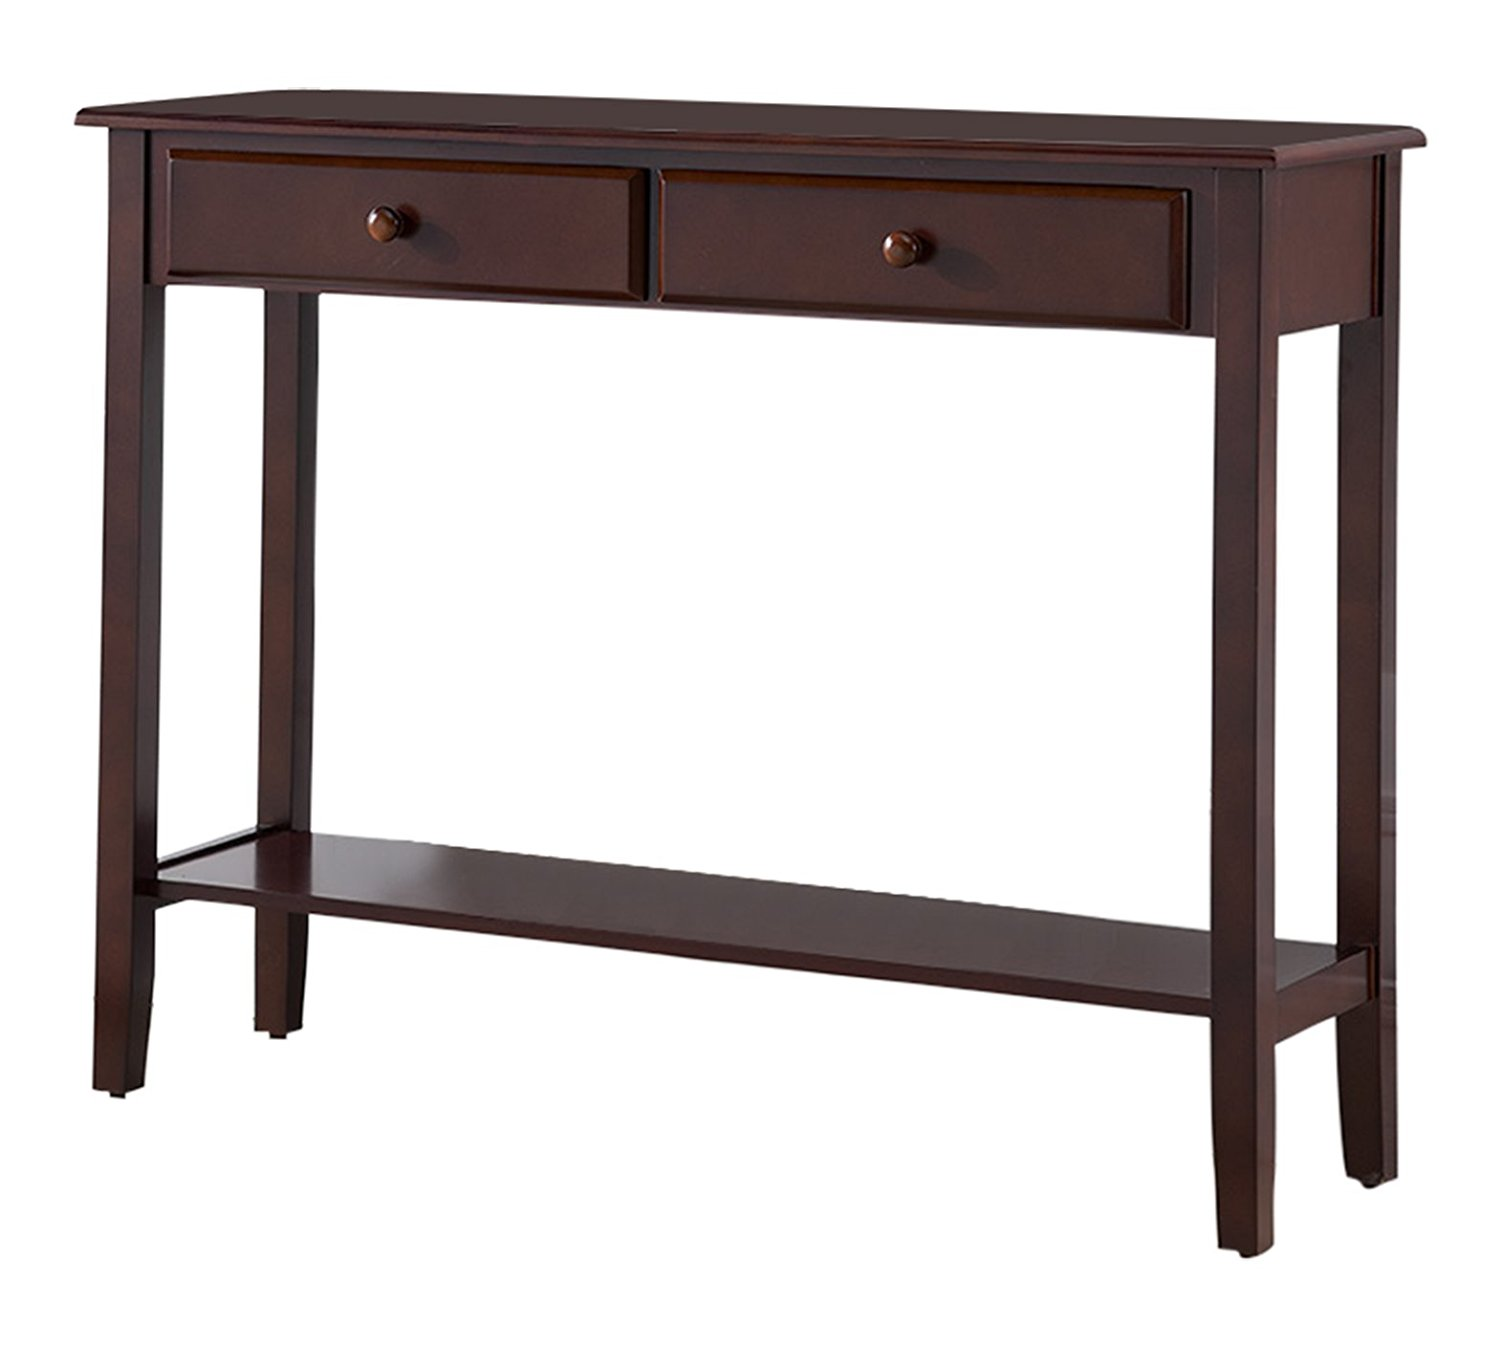 Sofa Side Table With Drawer Narrow Sofa Table With Drawers Narrow Console Table With